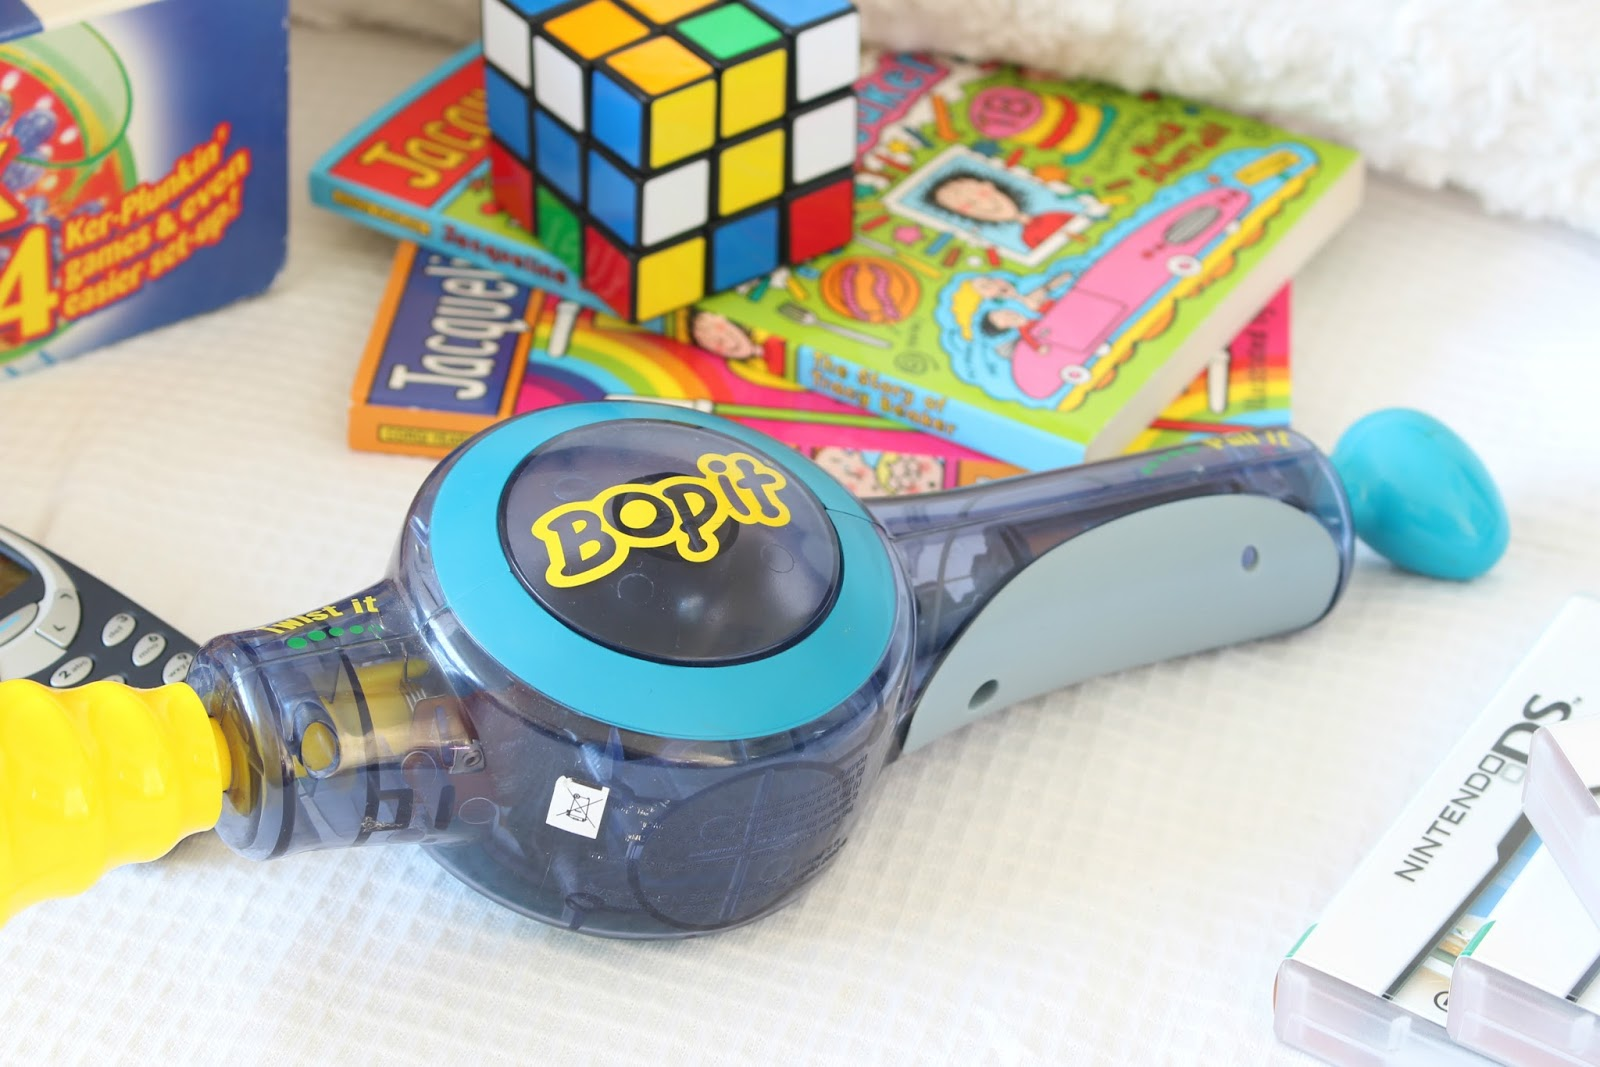 34 Toys We All Had As Kids invaluable.com fun lists